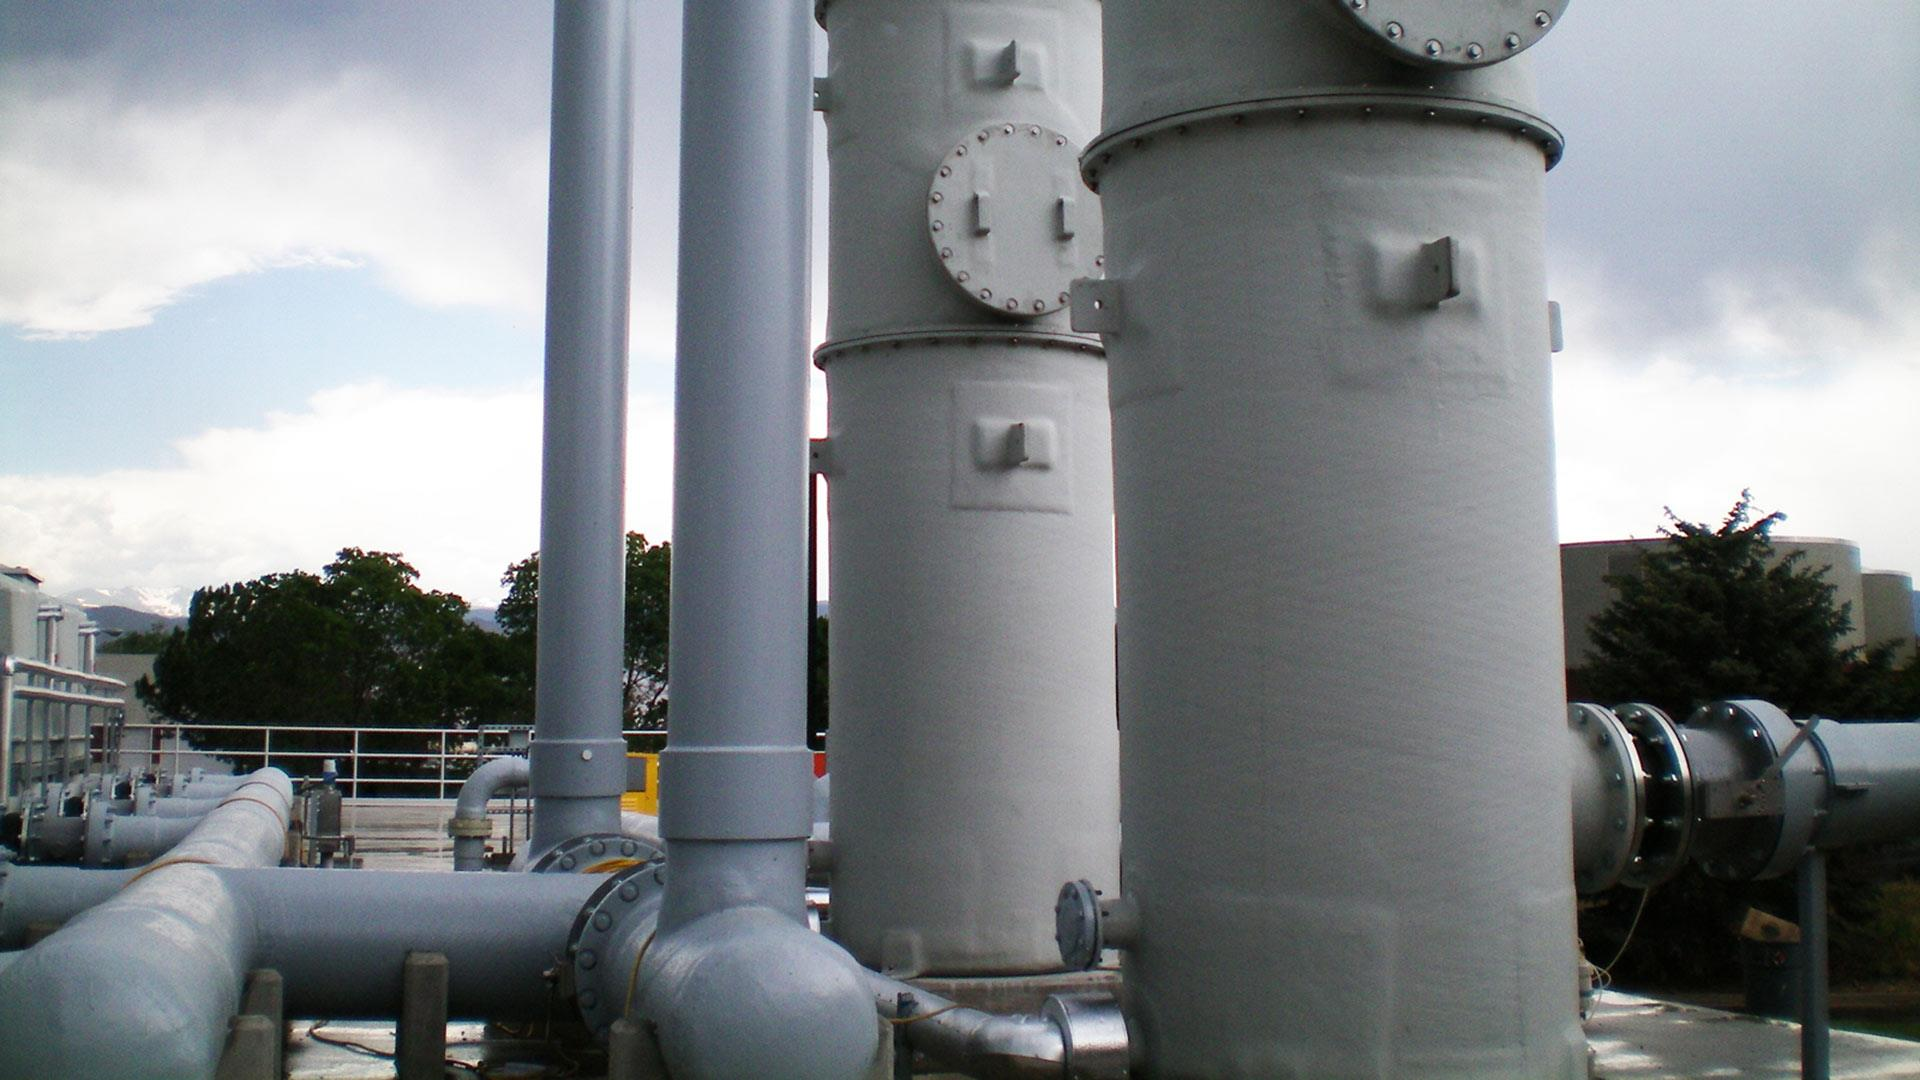 Features a detail closeup of Centricast Fiberglass piping